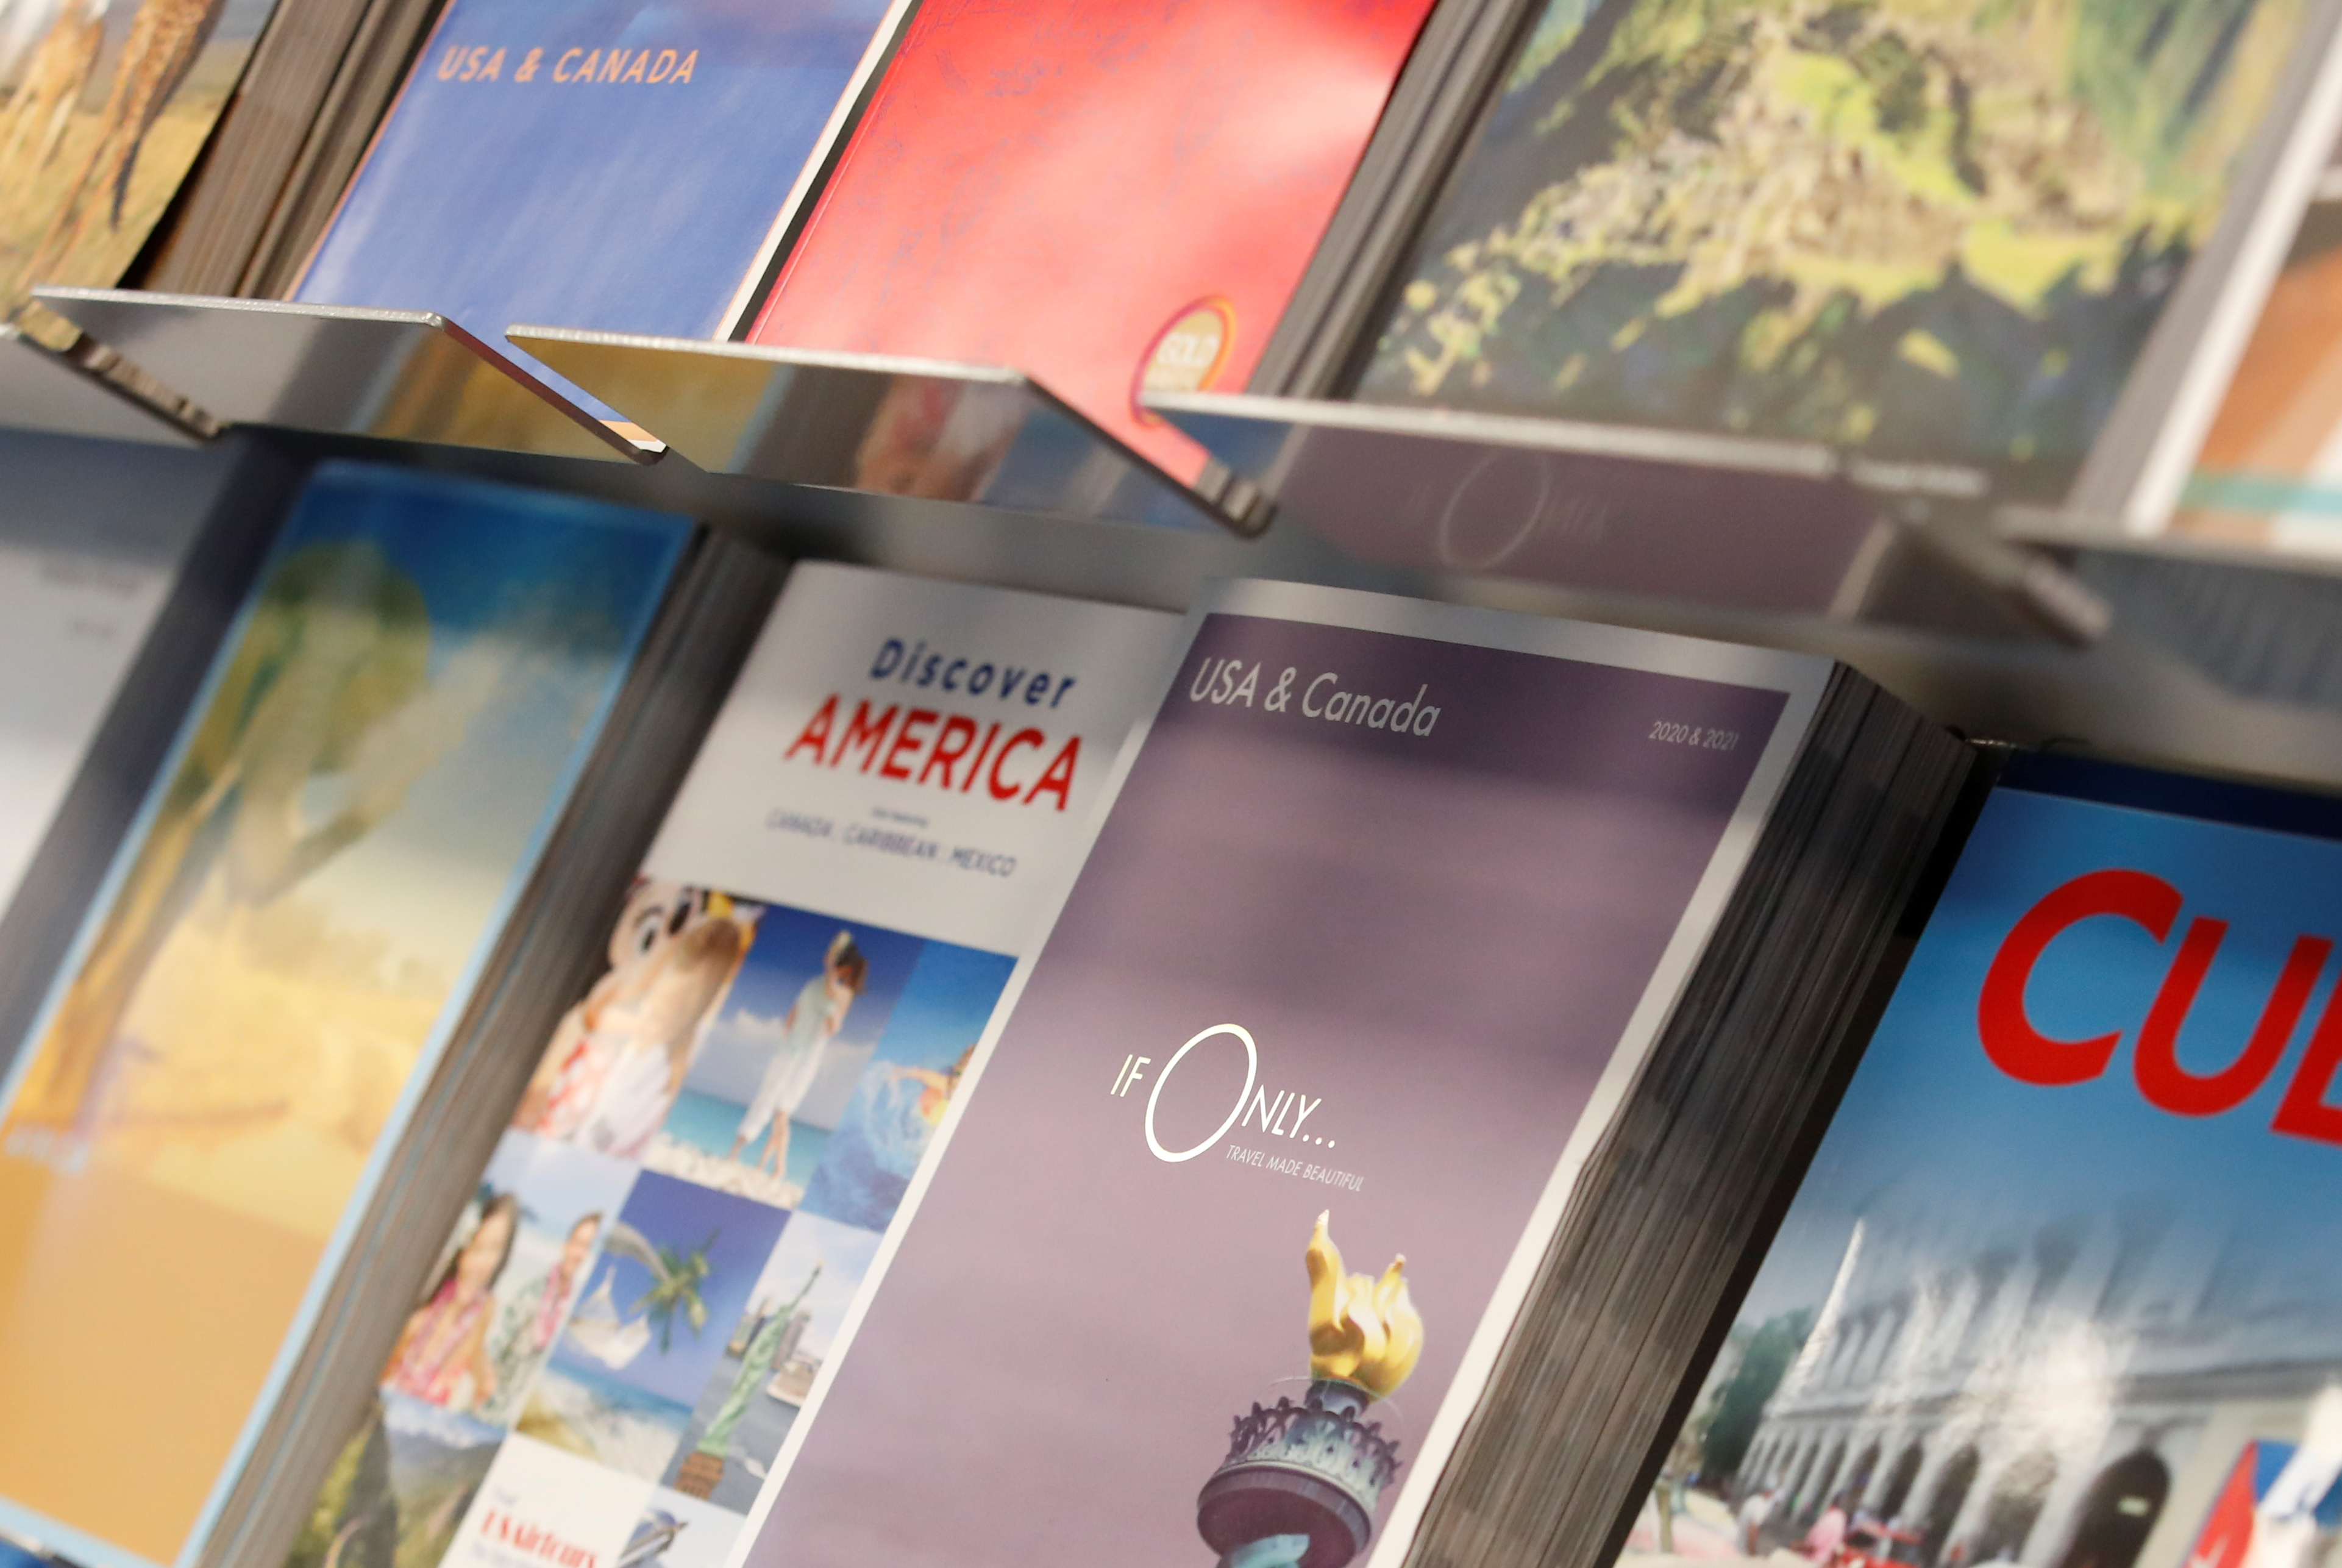 Travel brochures are seen at Bailey's Travel, in Wellingborough, Britain May 7, 2021. REUTERS/Andrew Boyers